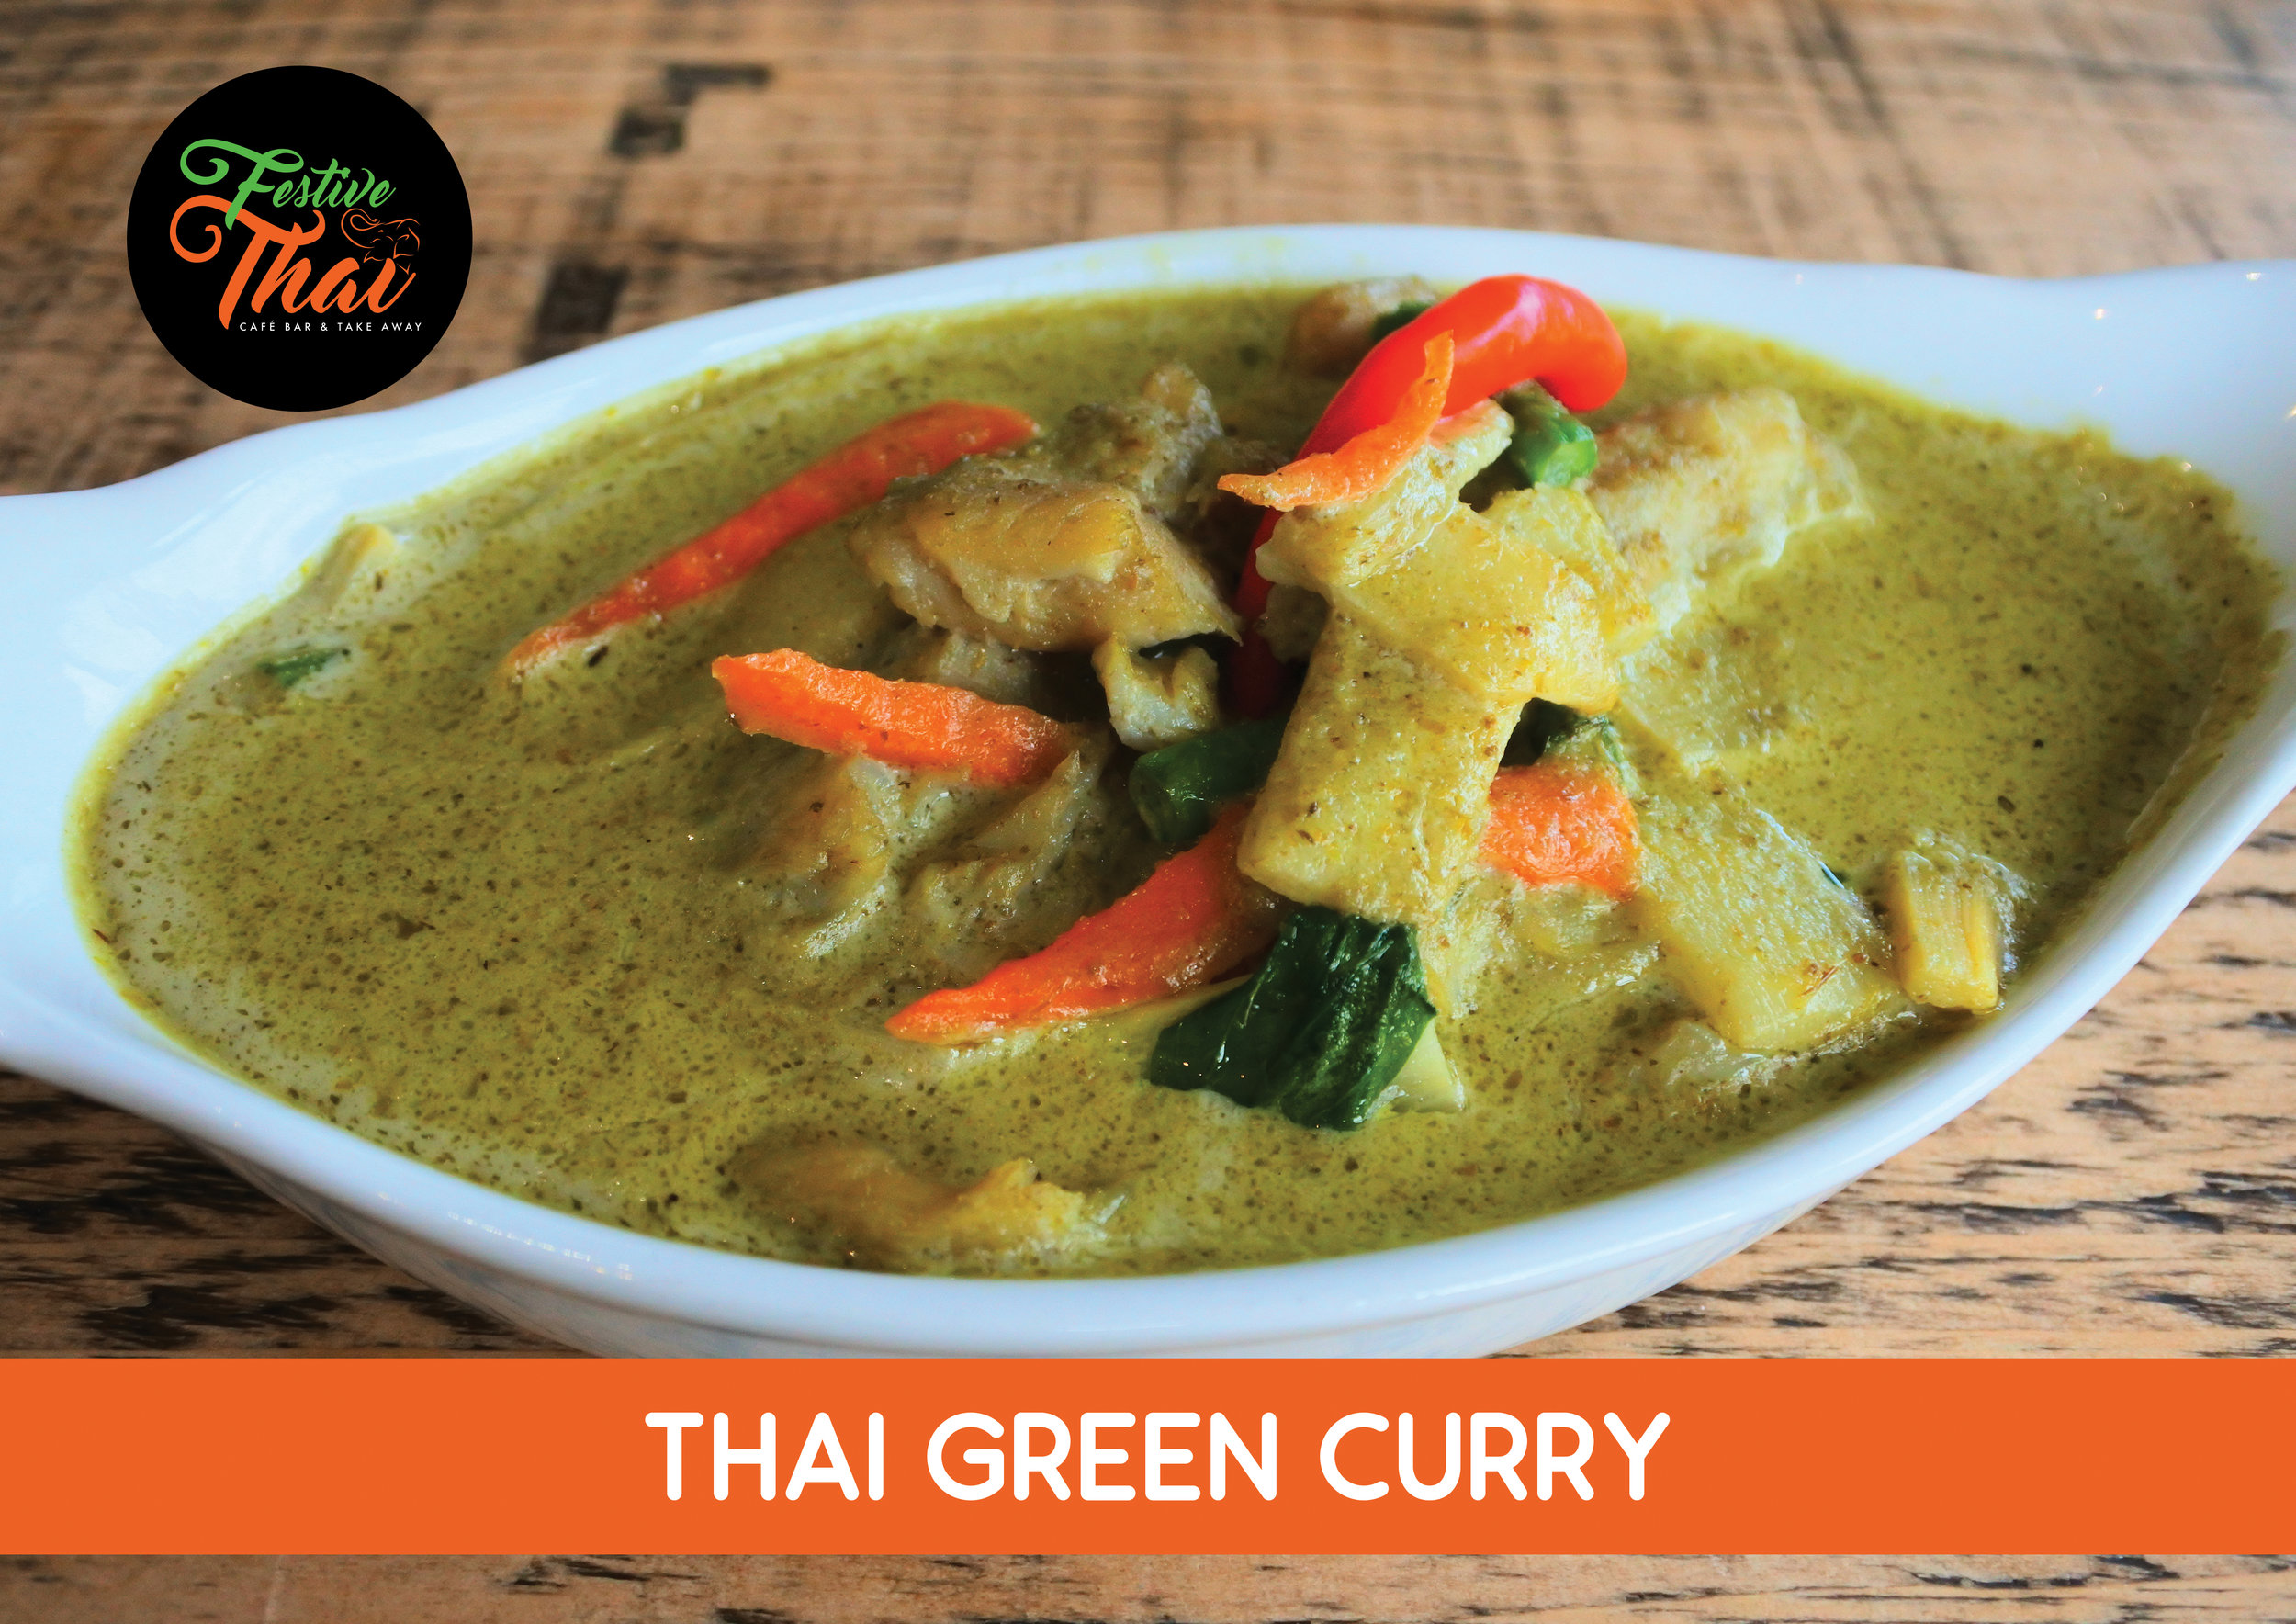 09_Green Curry.jpg